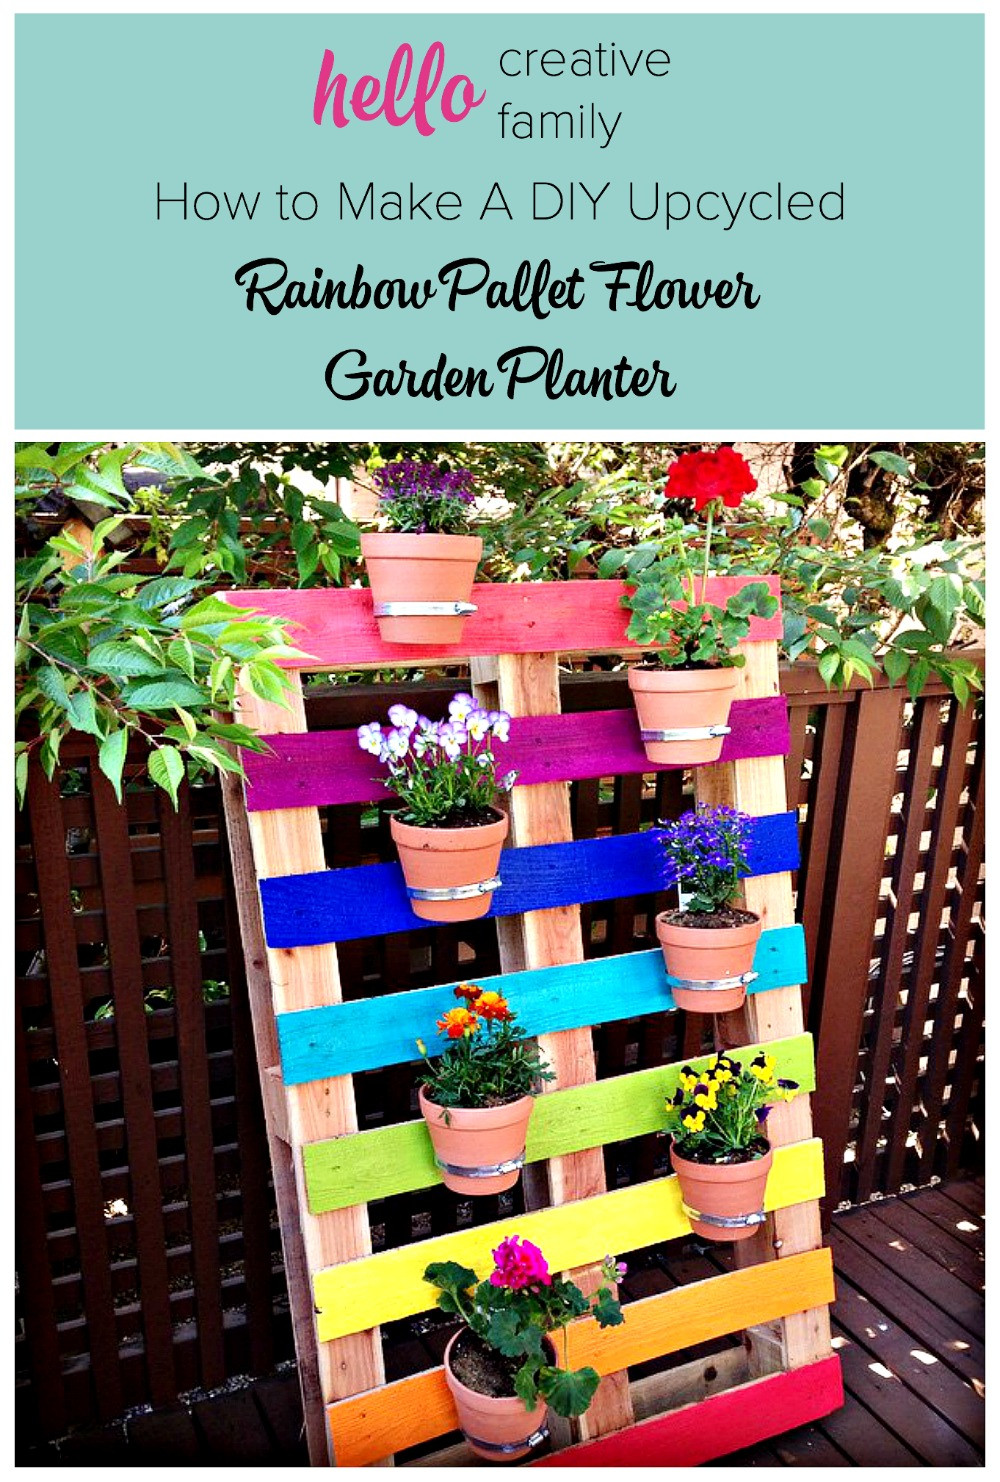 DIY Projects For Kids  27 Rainbow Crafts DIY Projects and Recipes Your Family